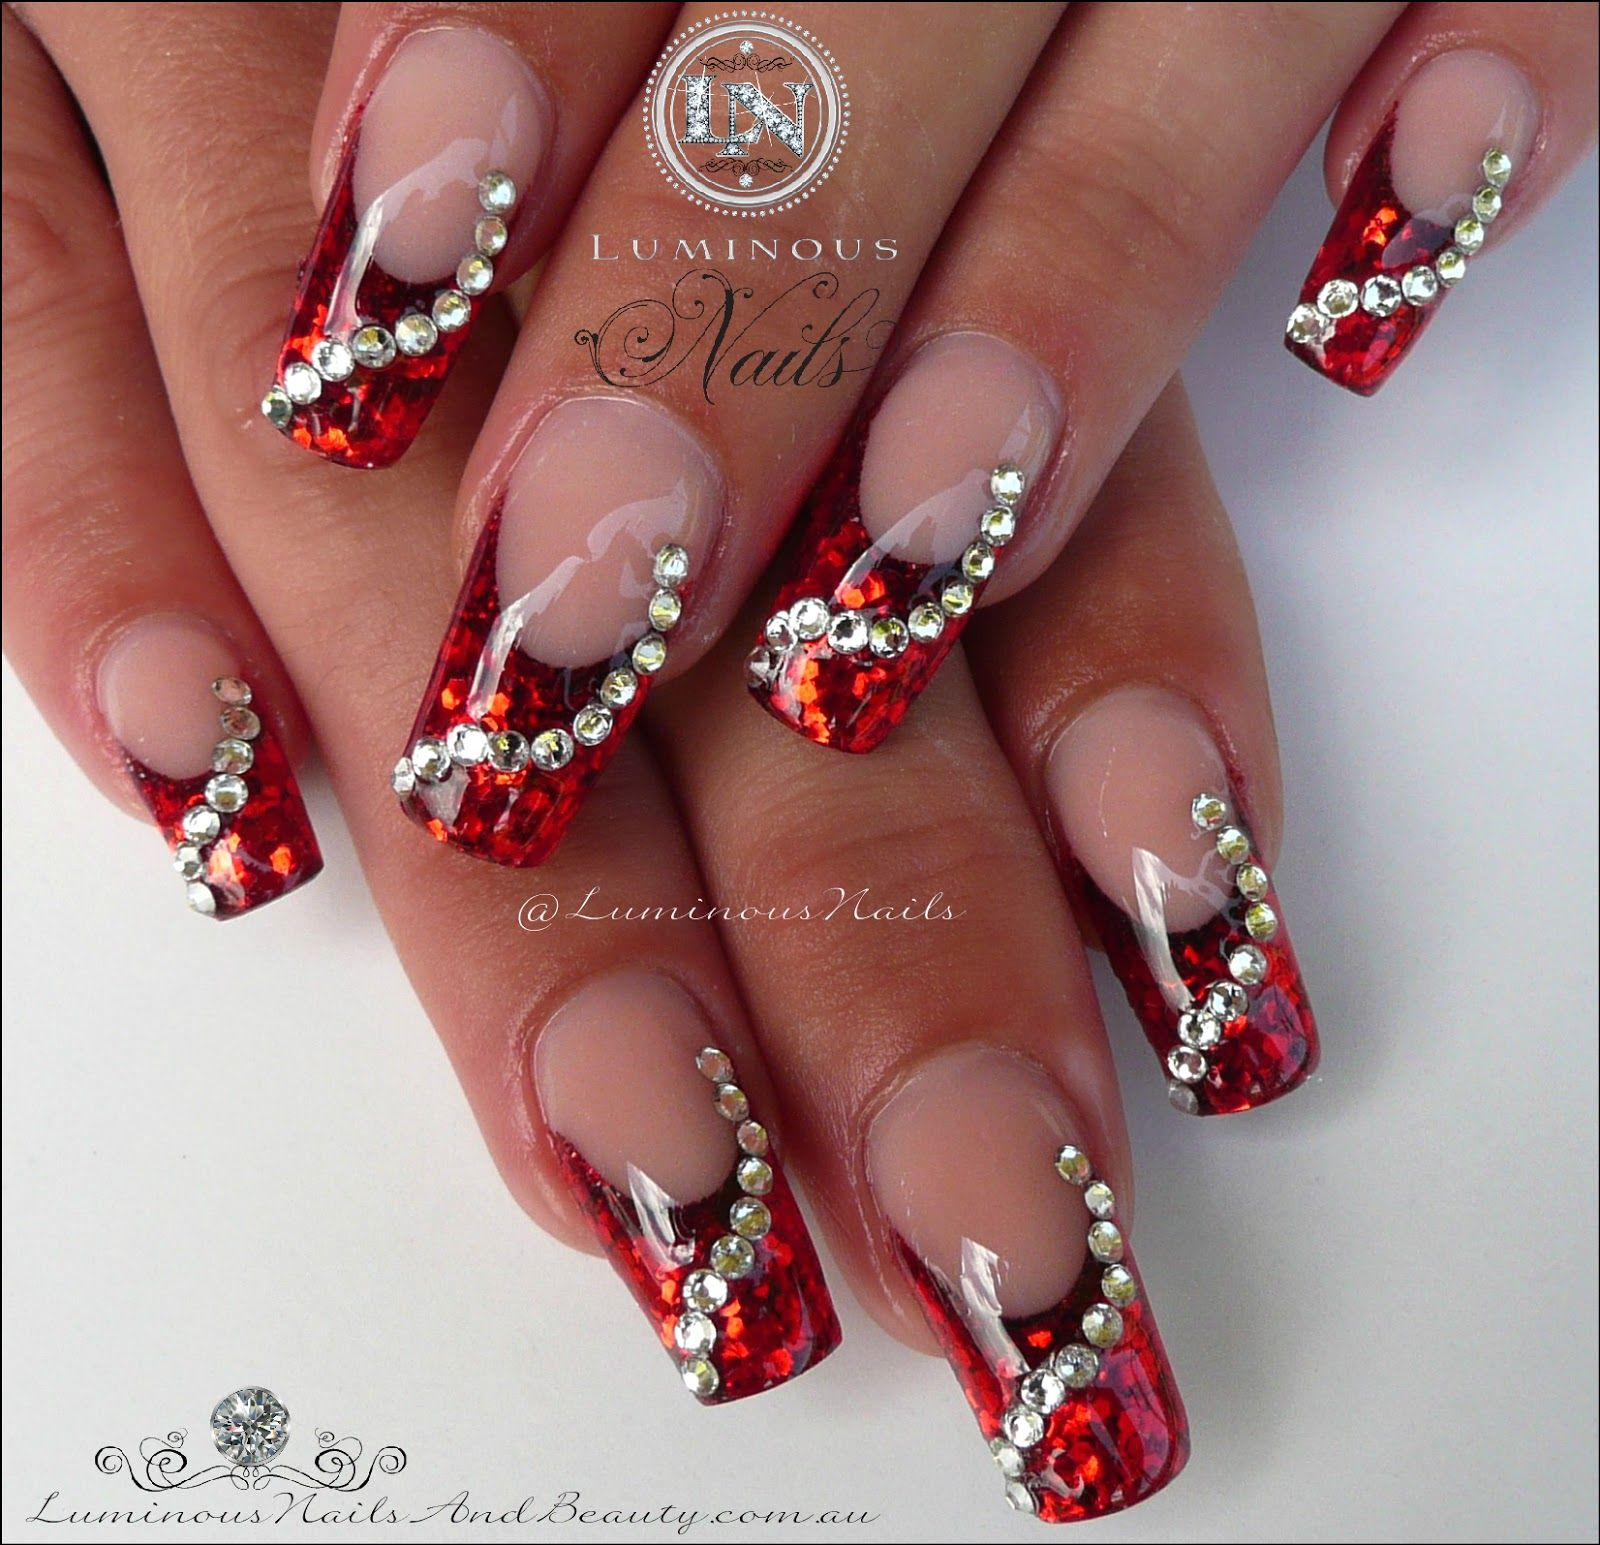 Gel Nails For Christmas 2019: Glittery Red Christmas Nails With Swarovski Crystals